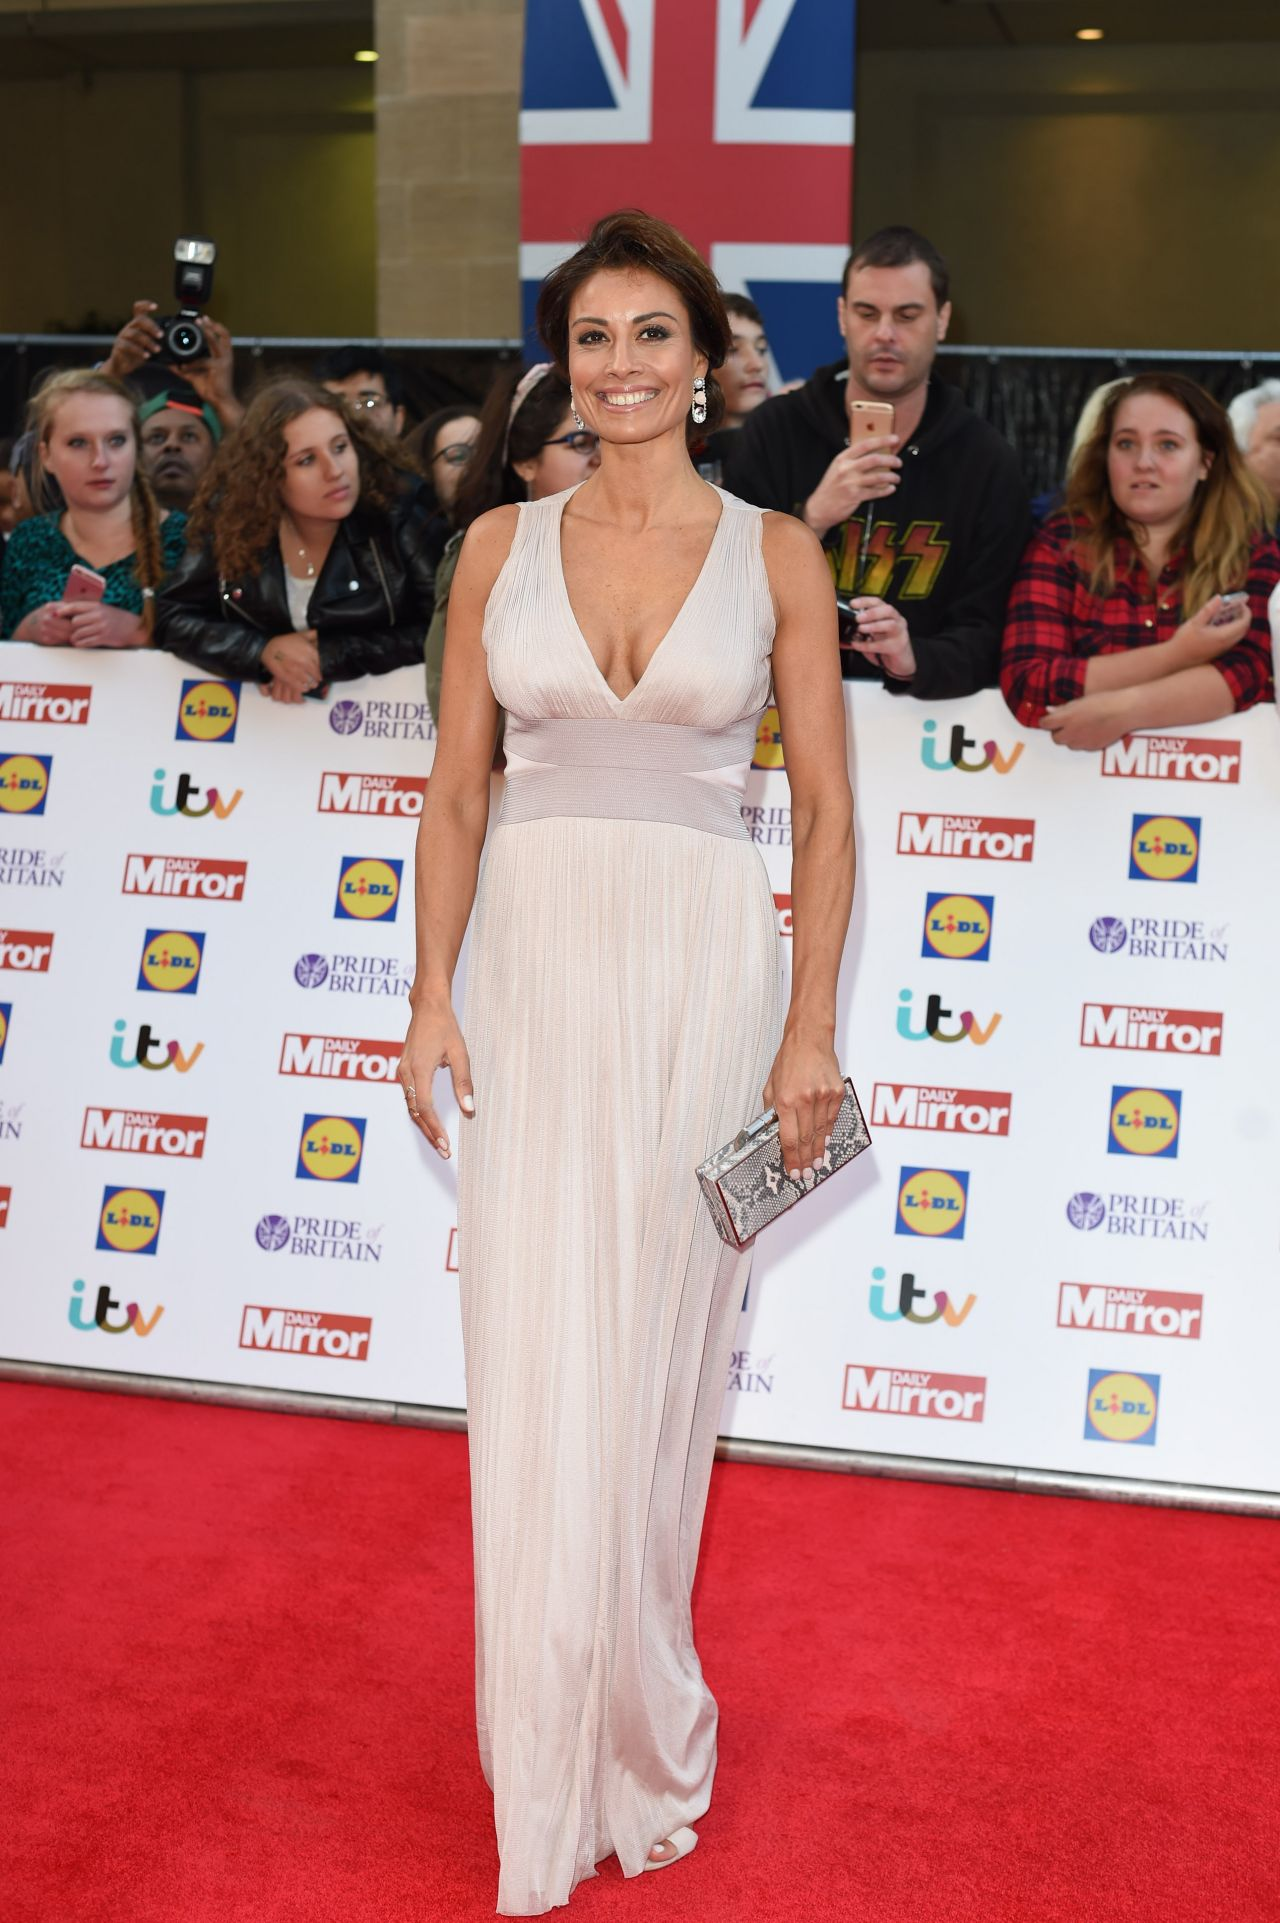 melanie-sykes-pride-of-britain-awards-2015-in-london_4